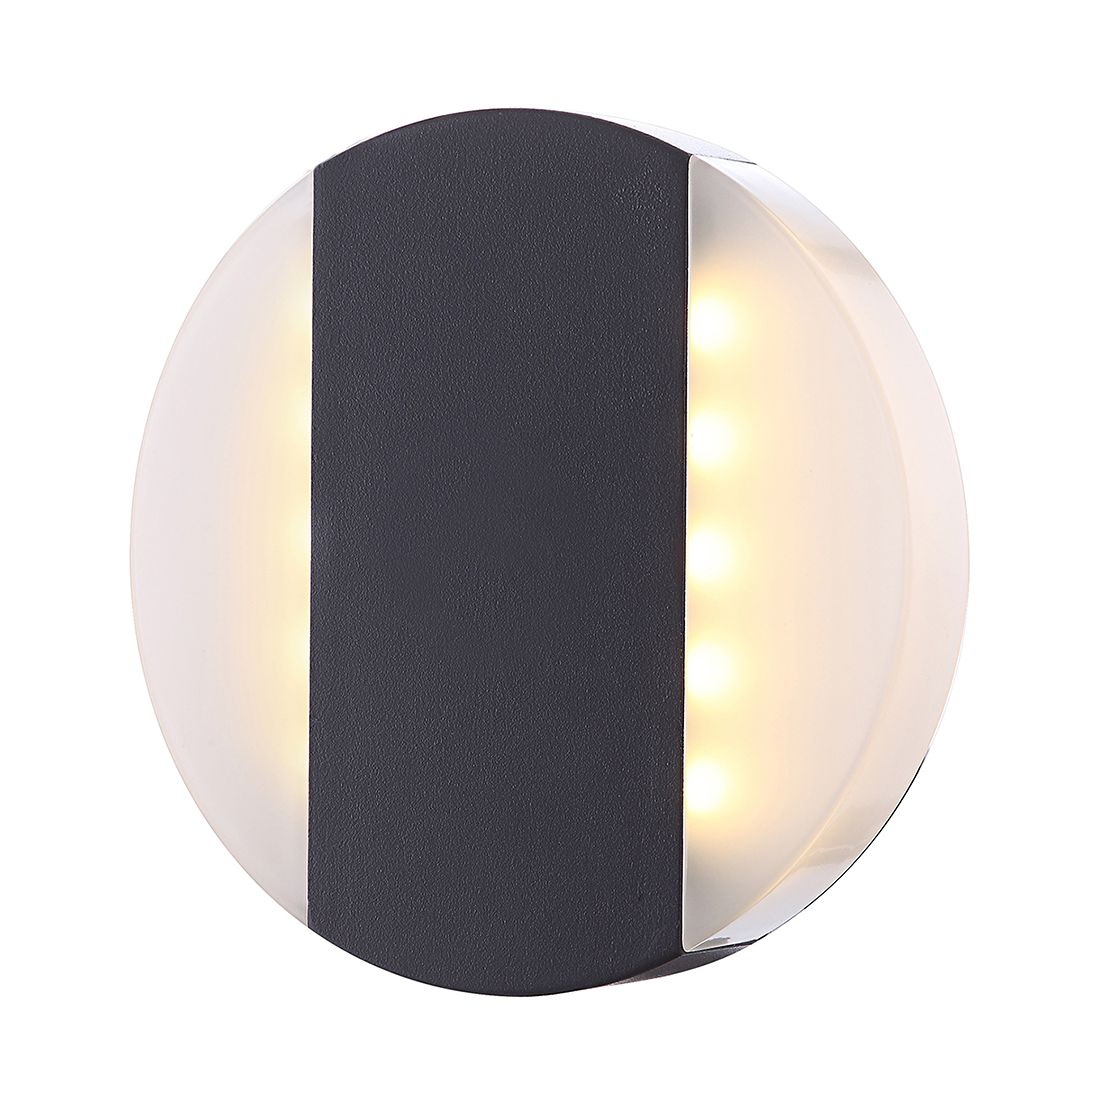 Lampada LED esterni Moonlight by Globo, Globo Lighting